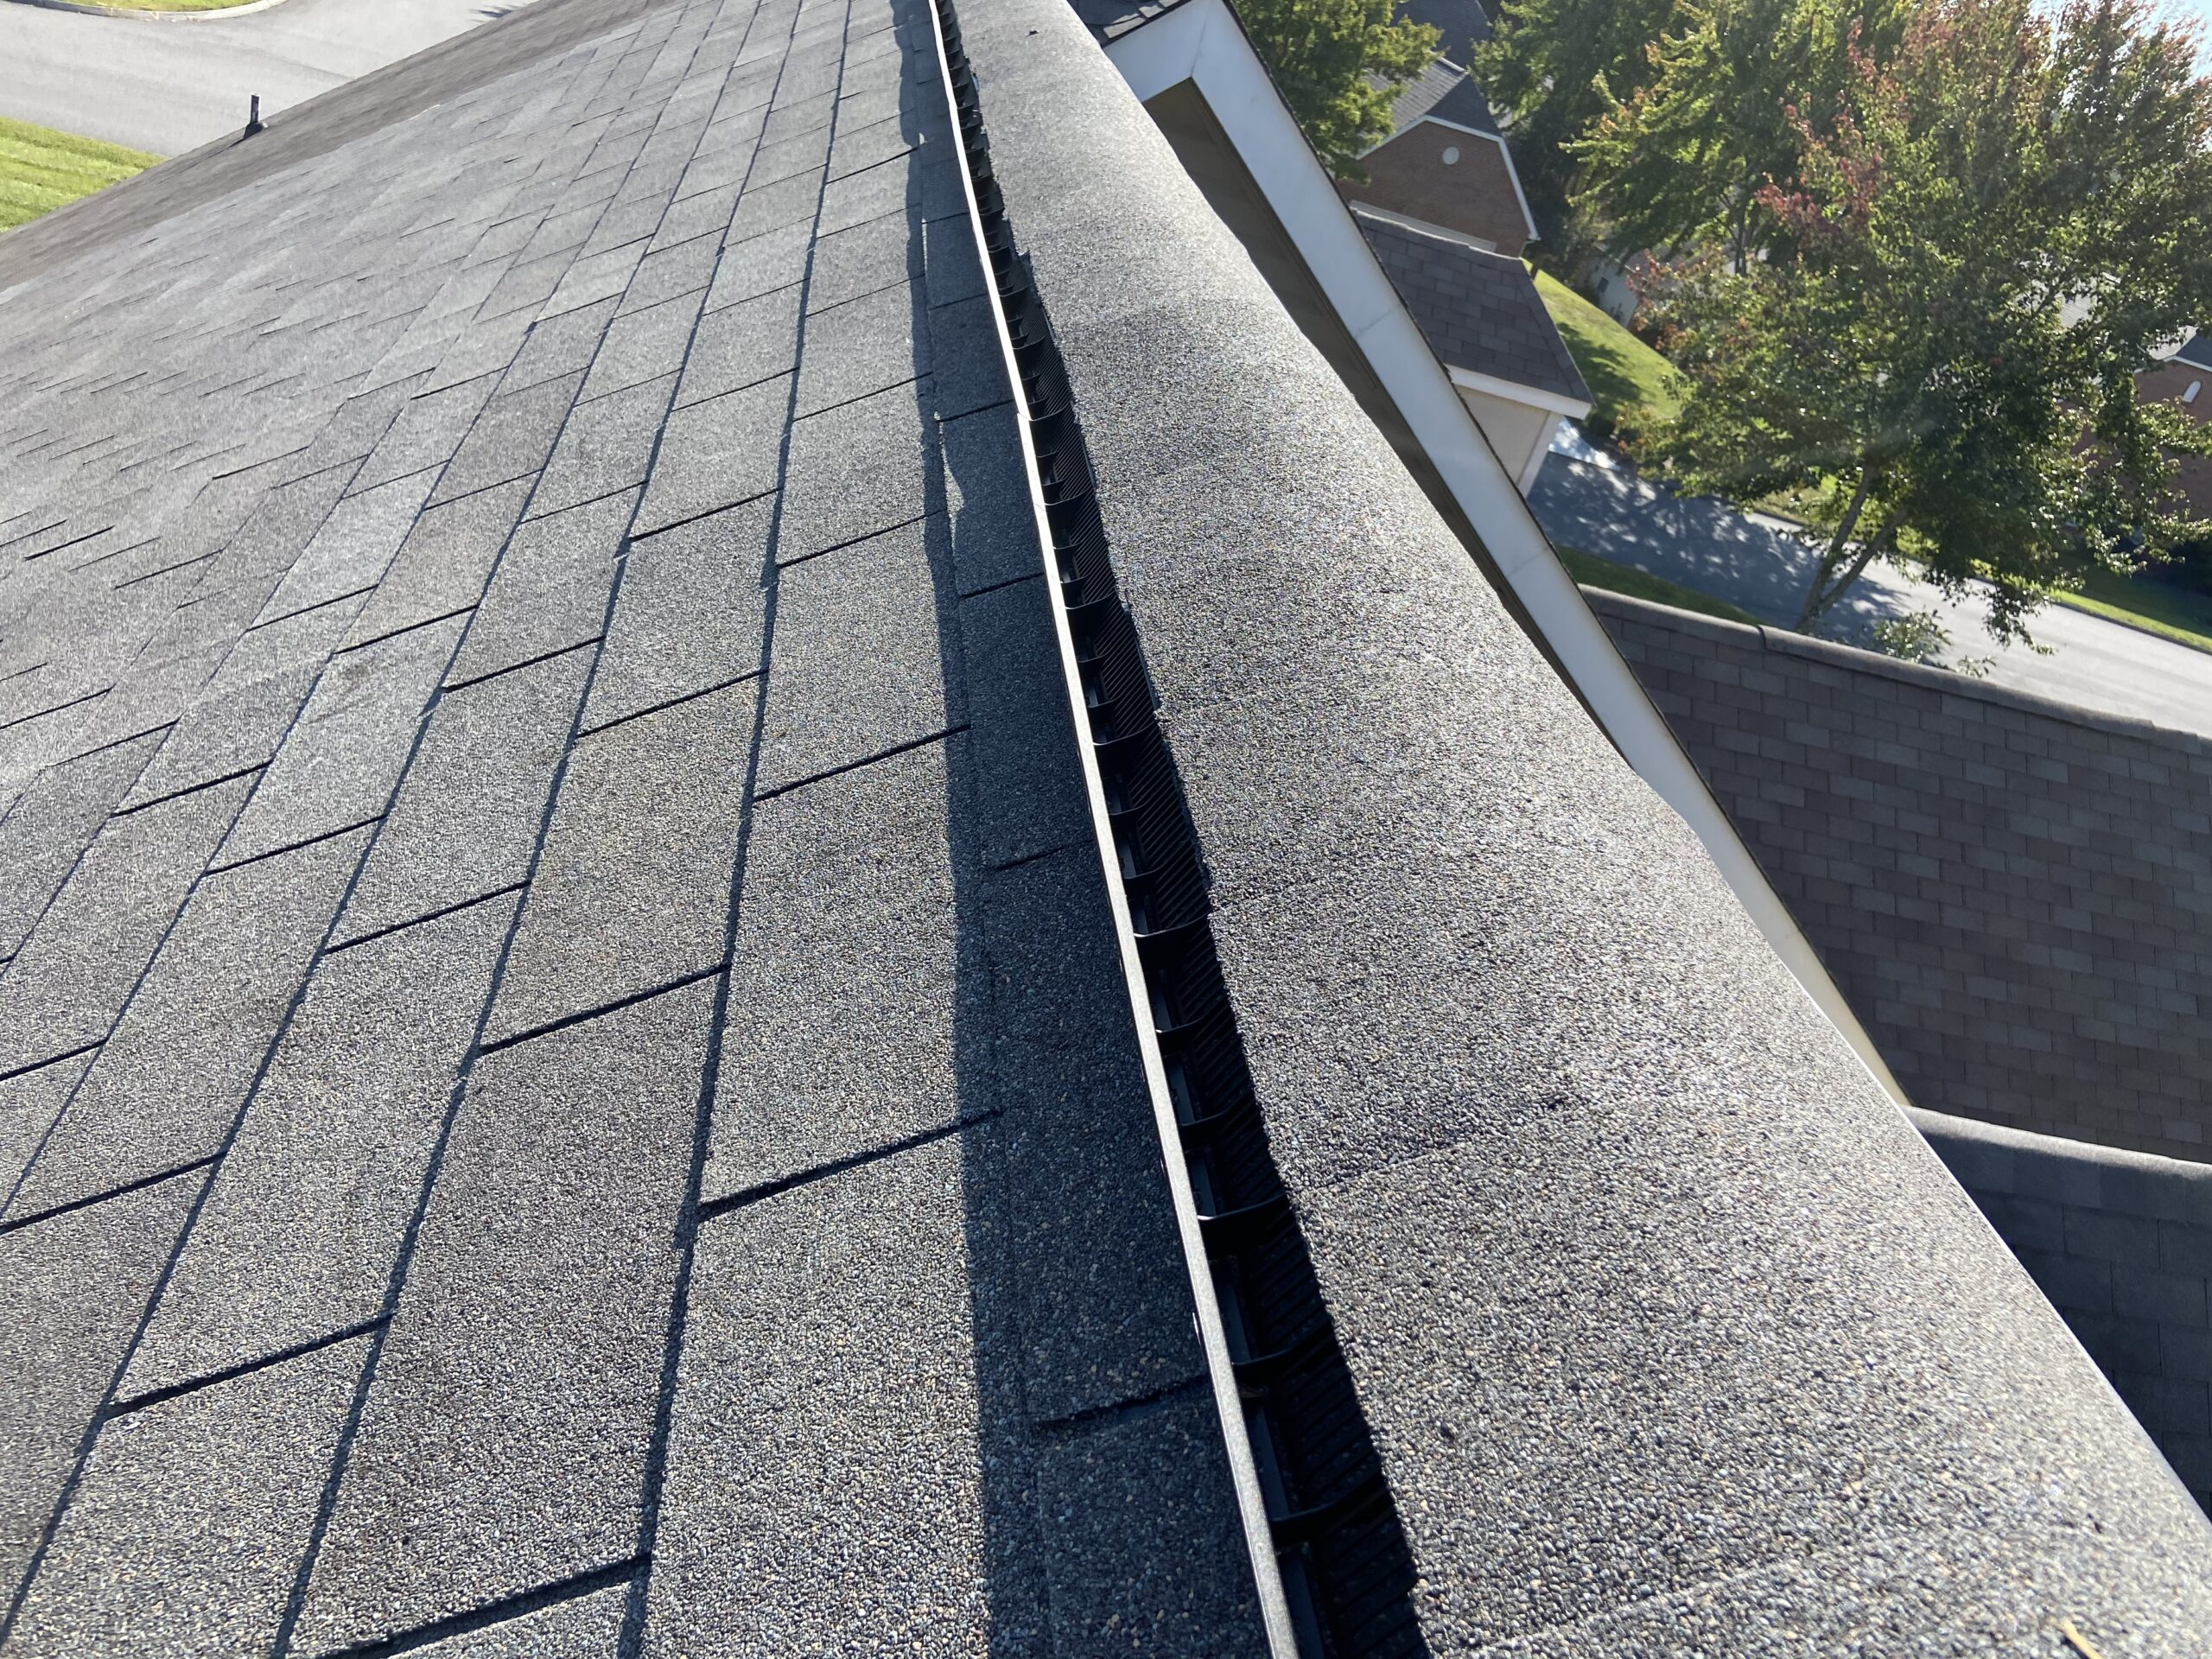 This is a picture of new ridge vent on a gray colored roof